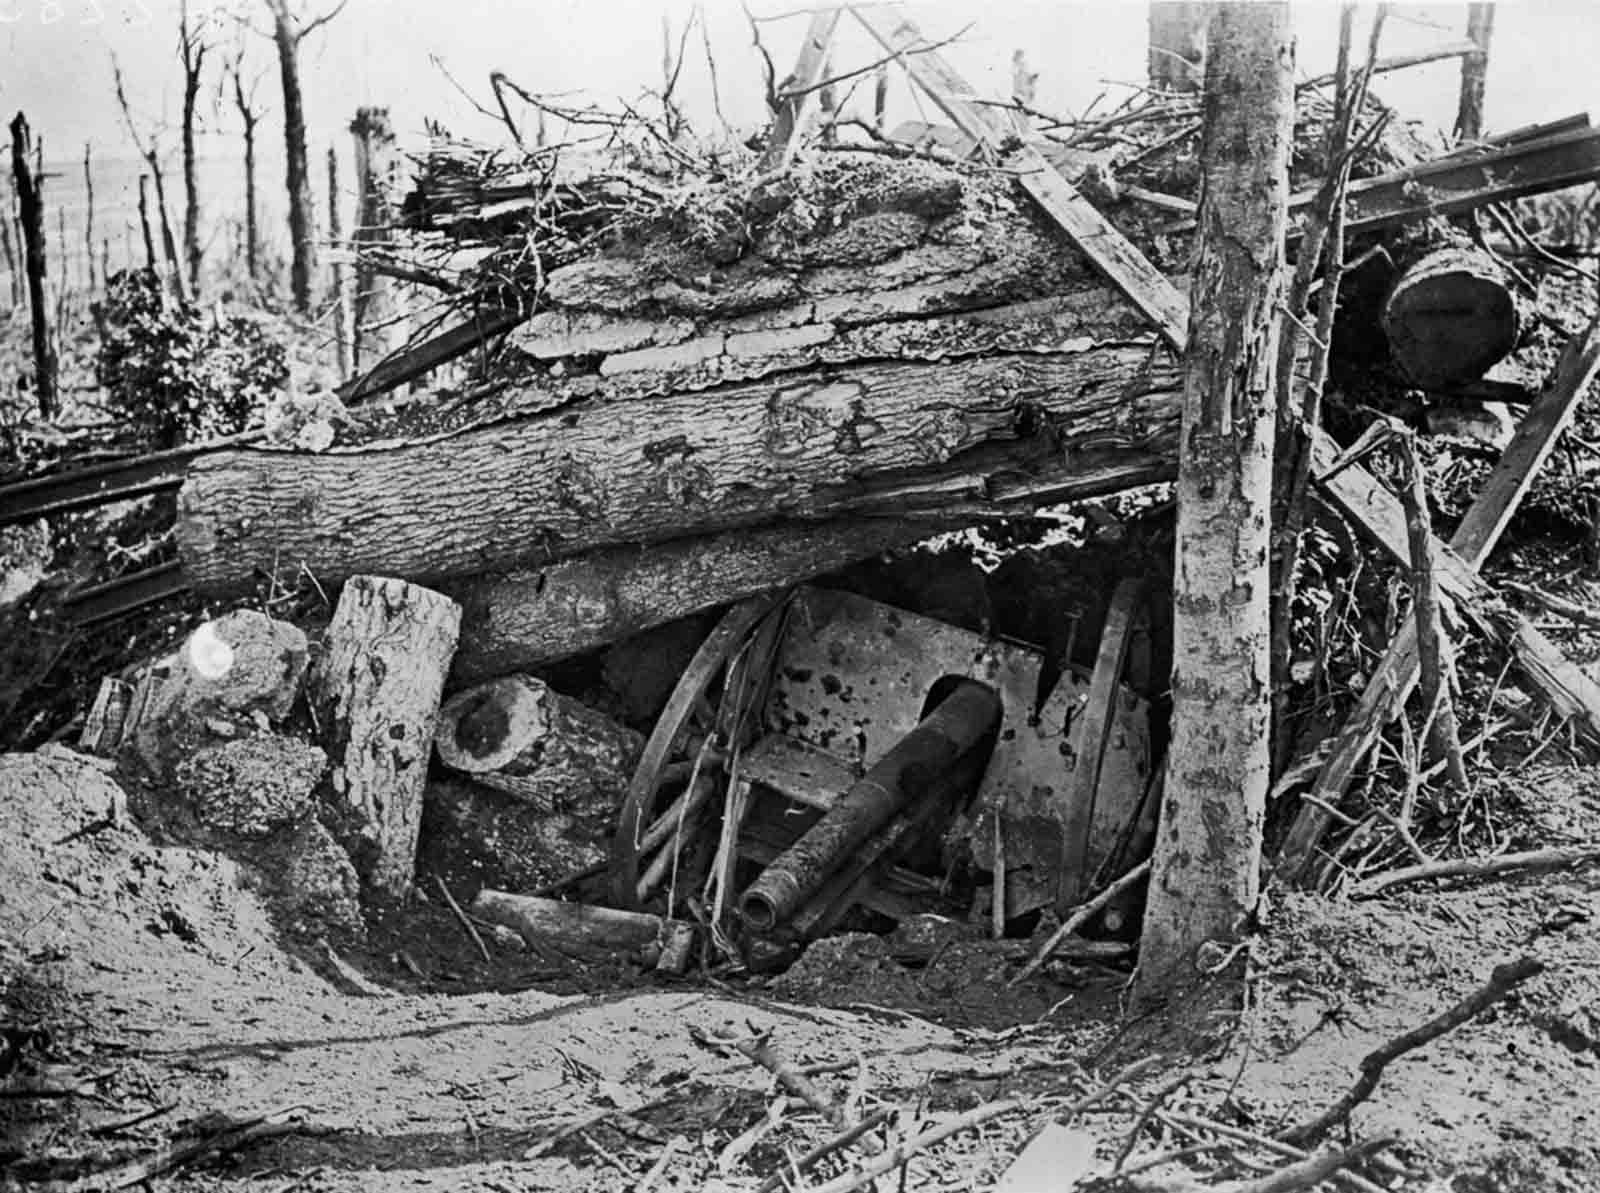 A German cannon lies buried under uprooted trees in Louage Wood during an Allied offensive. October 10, 1916.